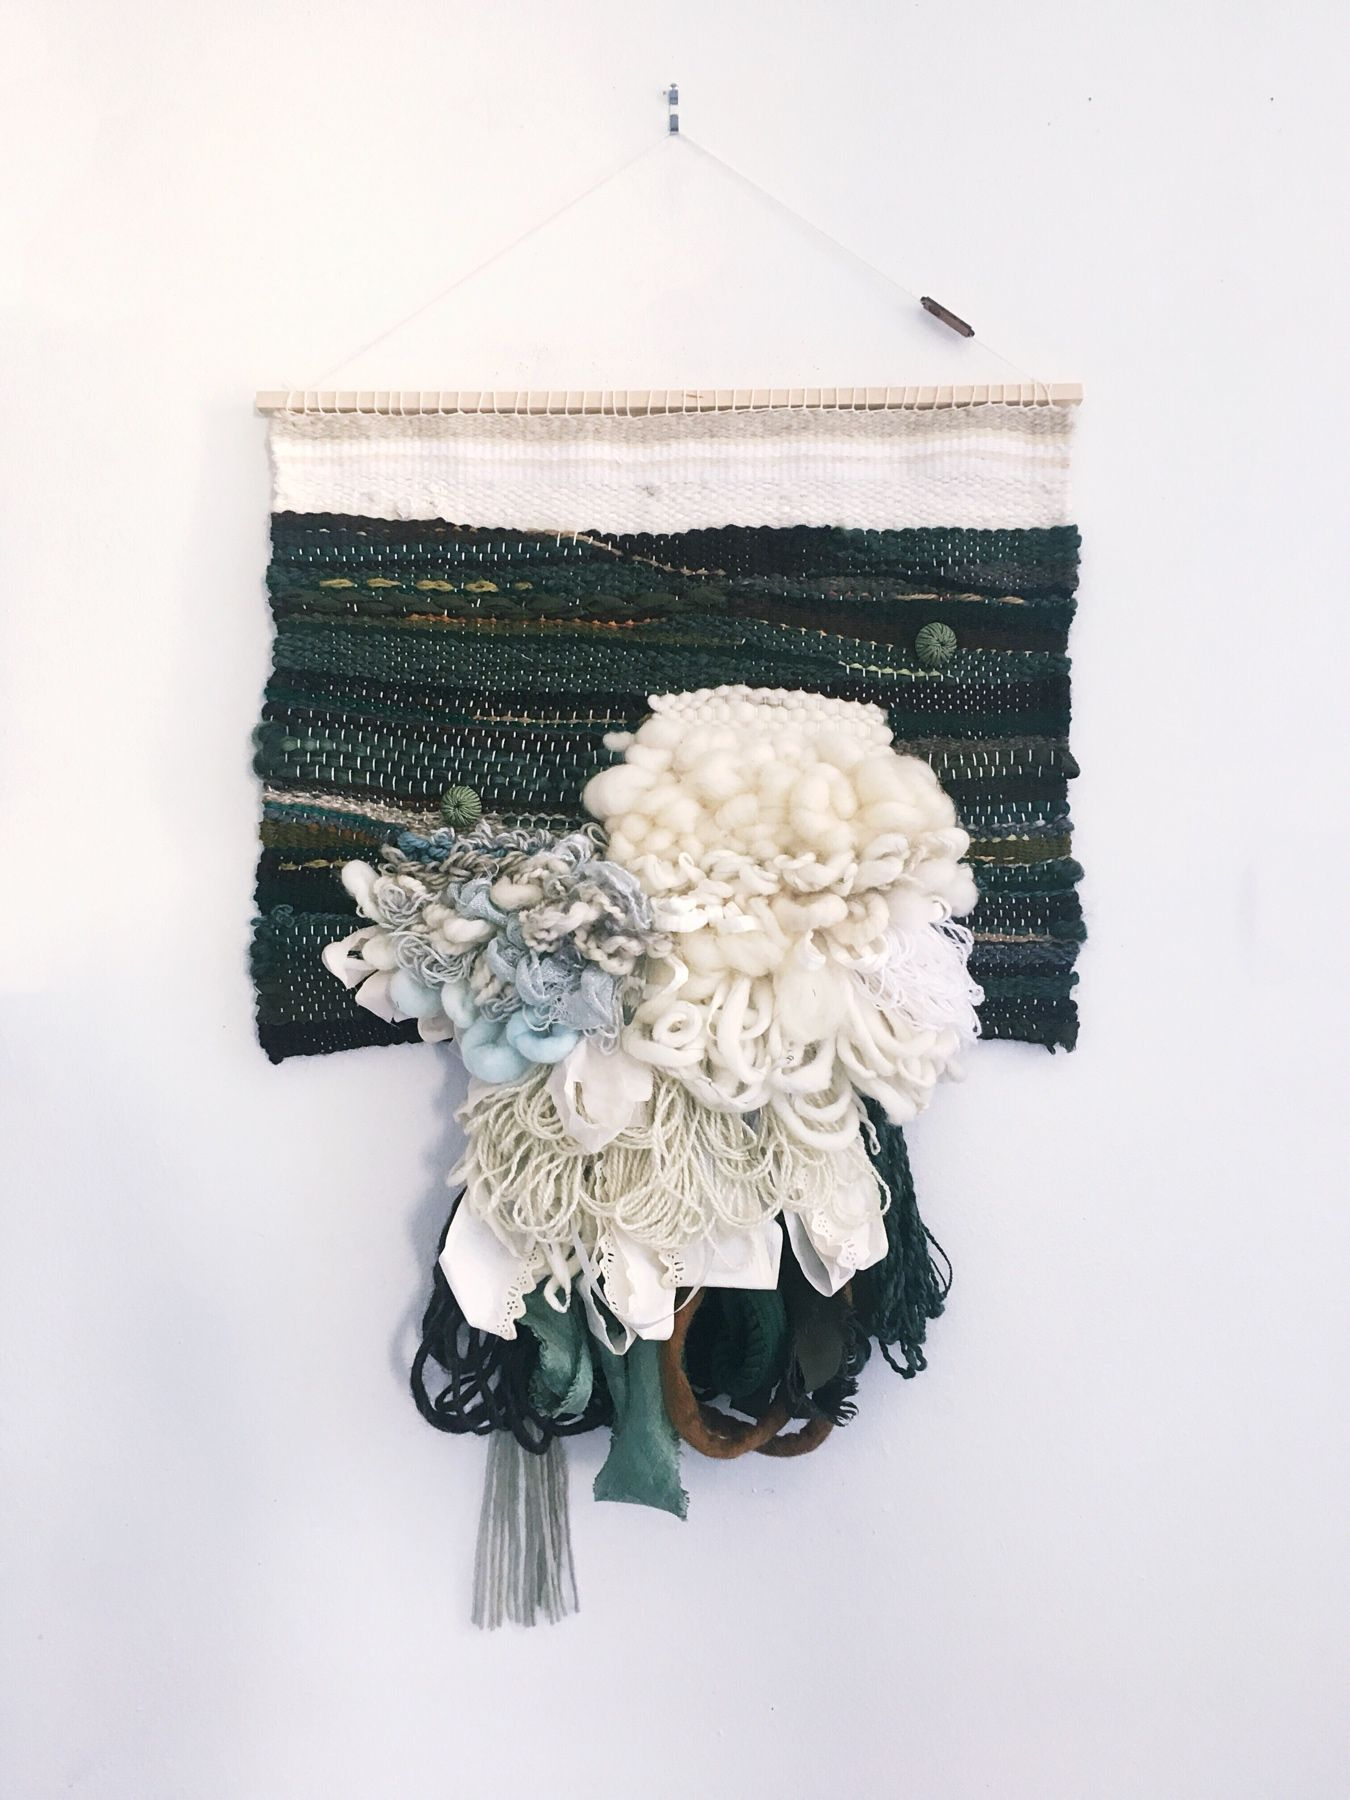 Welcome to Remettage, hand woven, knit, and sewn goods for the home!  - Shop available workView the websiteSay hi to Madeleine